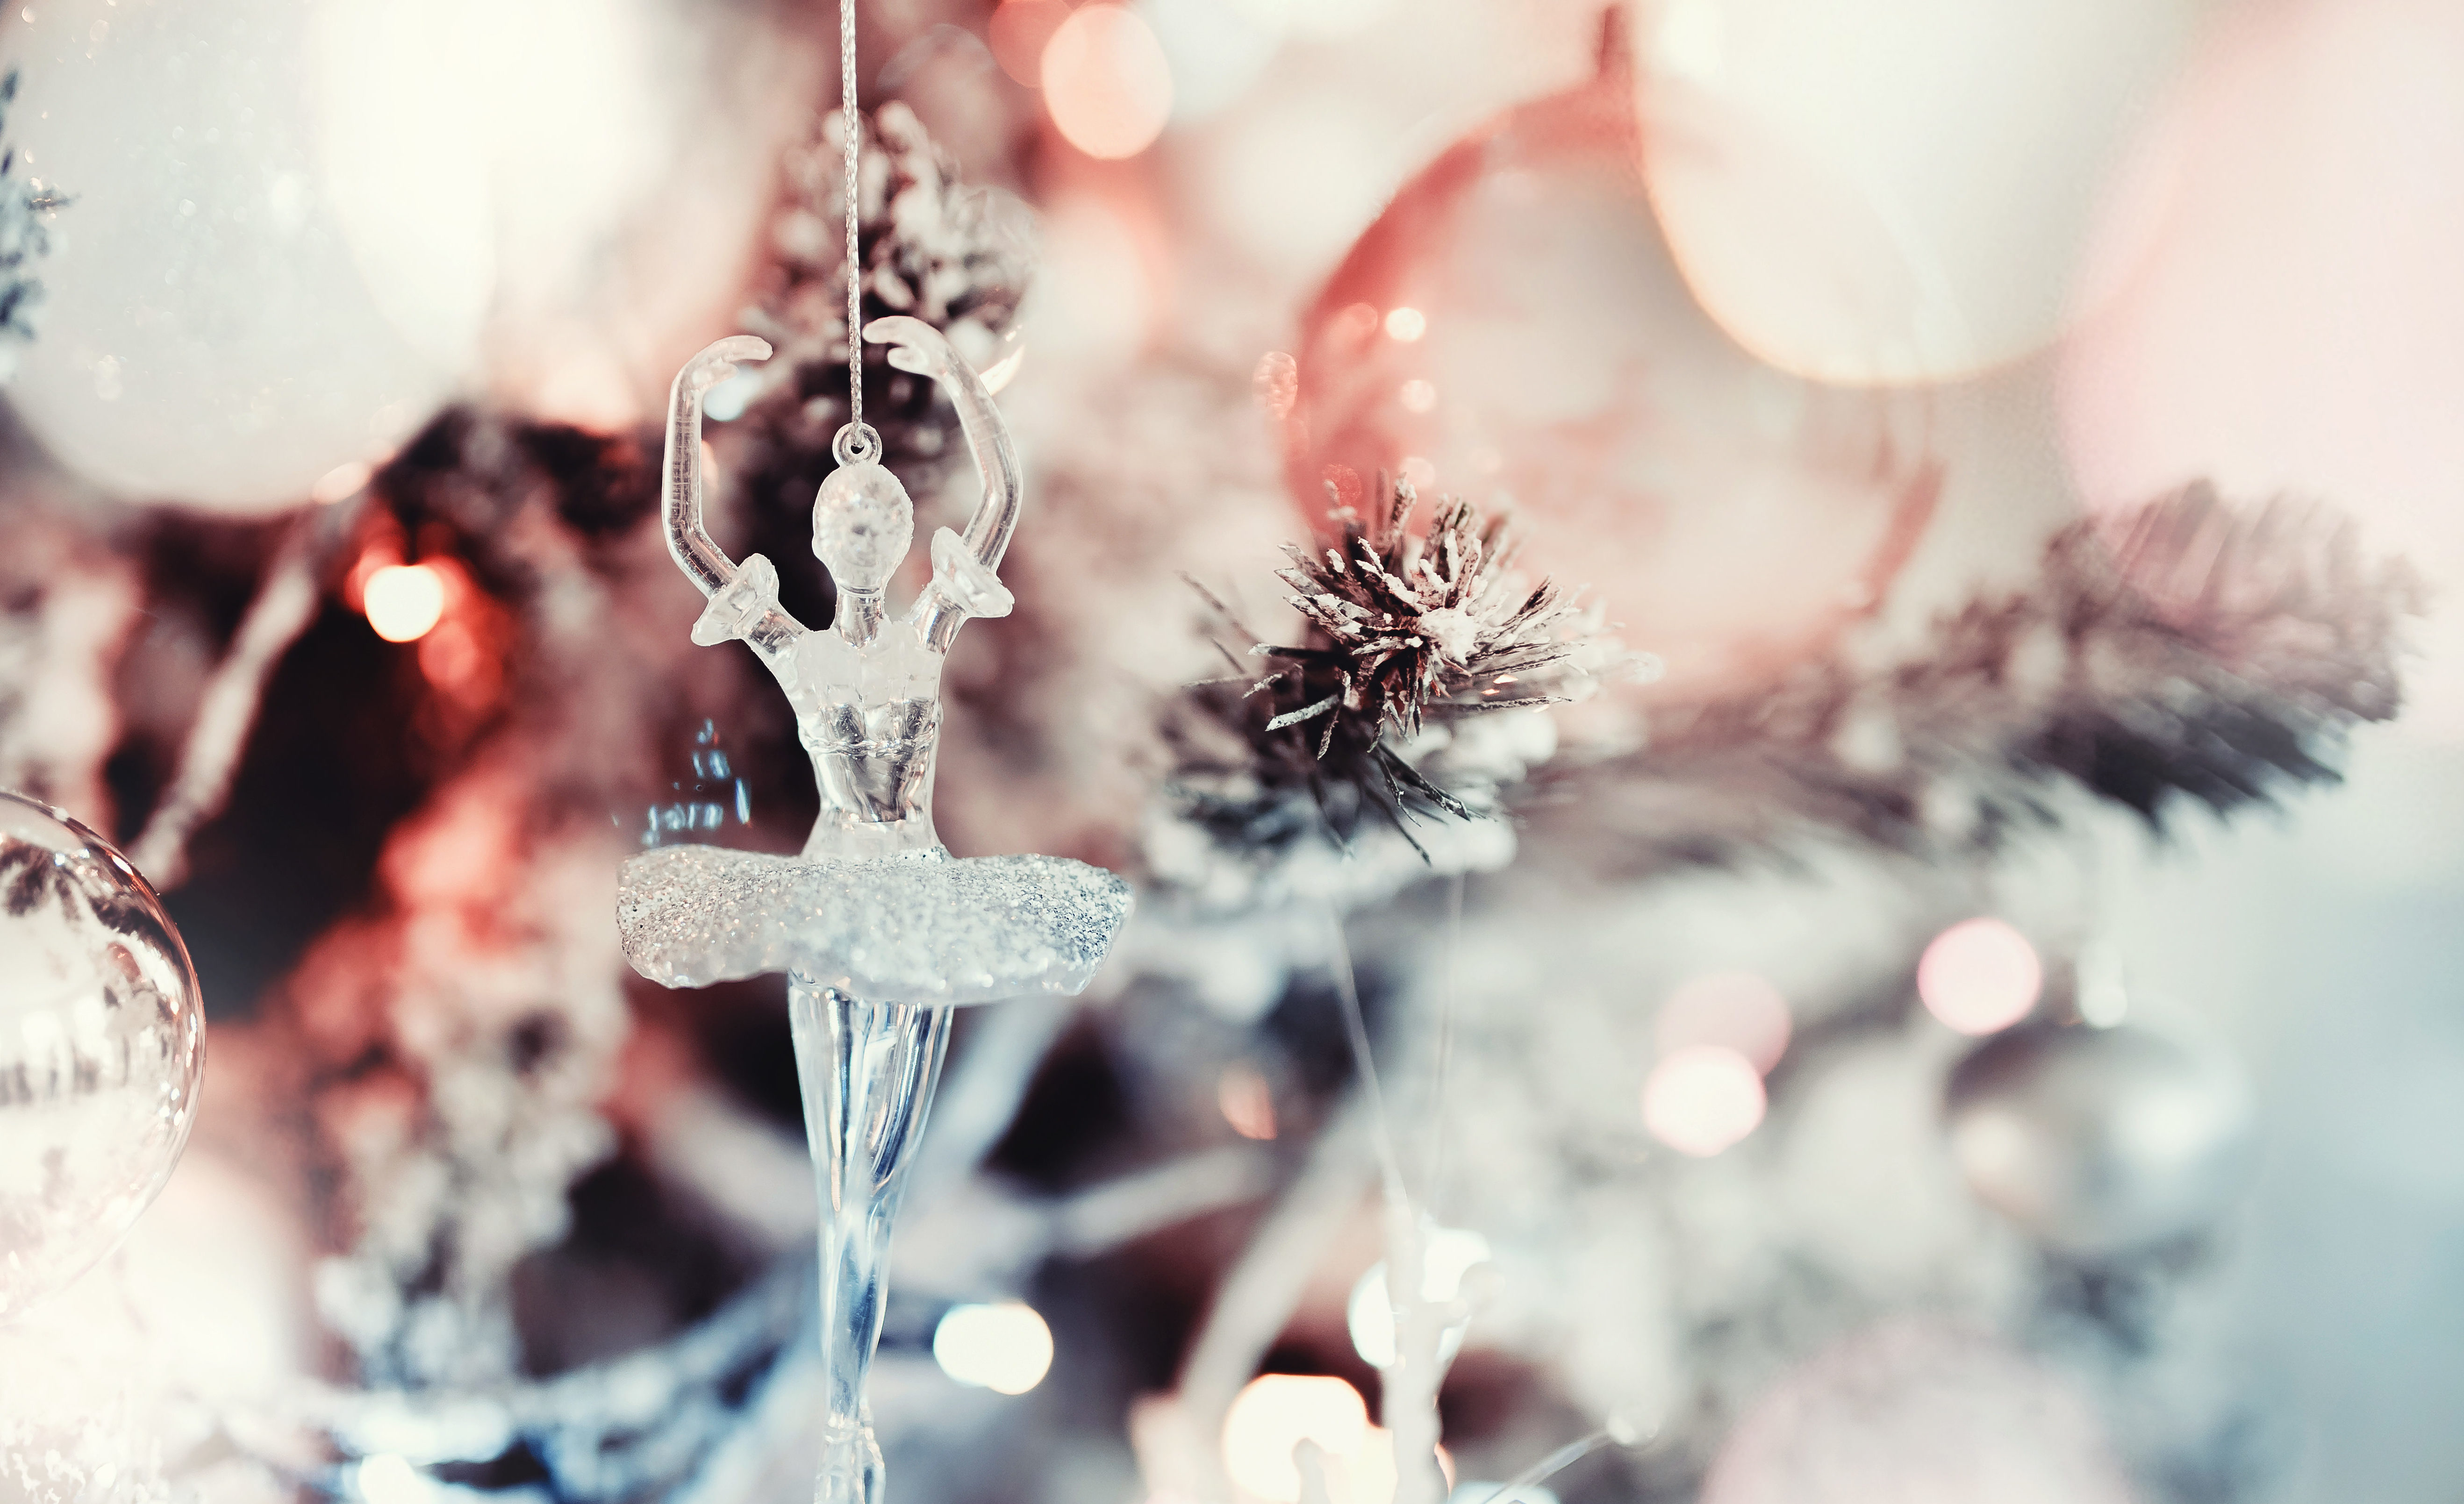 Glass ballerina ornament hanging on snow-dusted Christmas tree